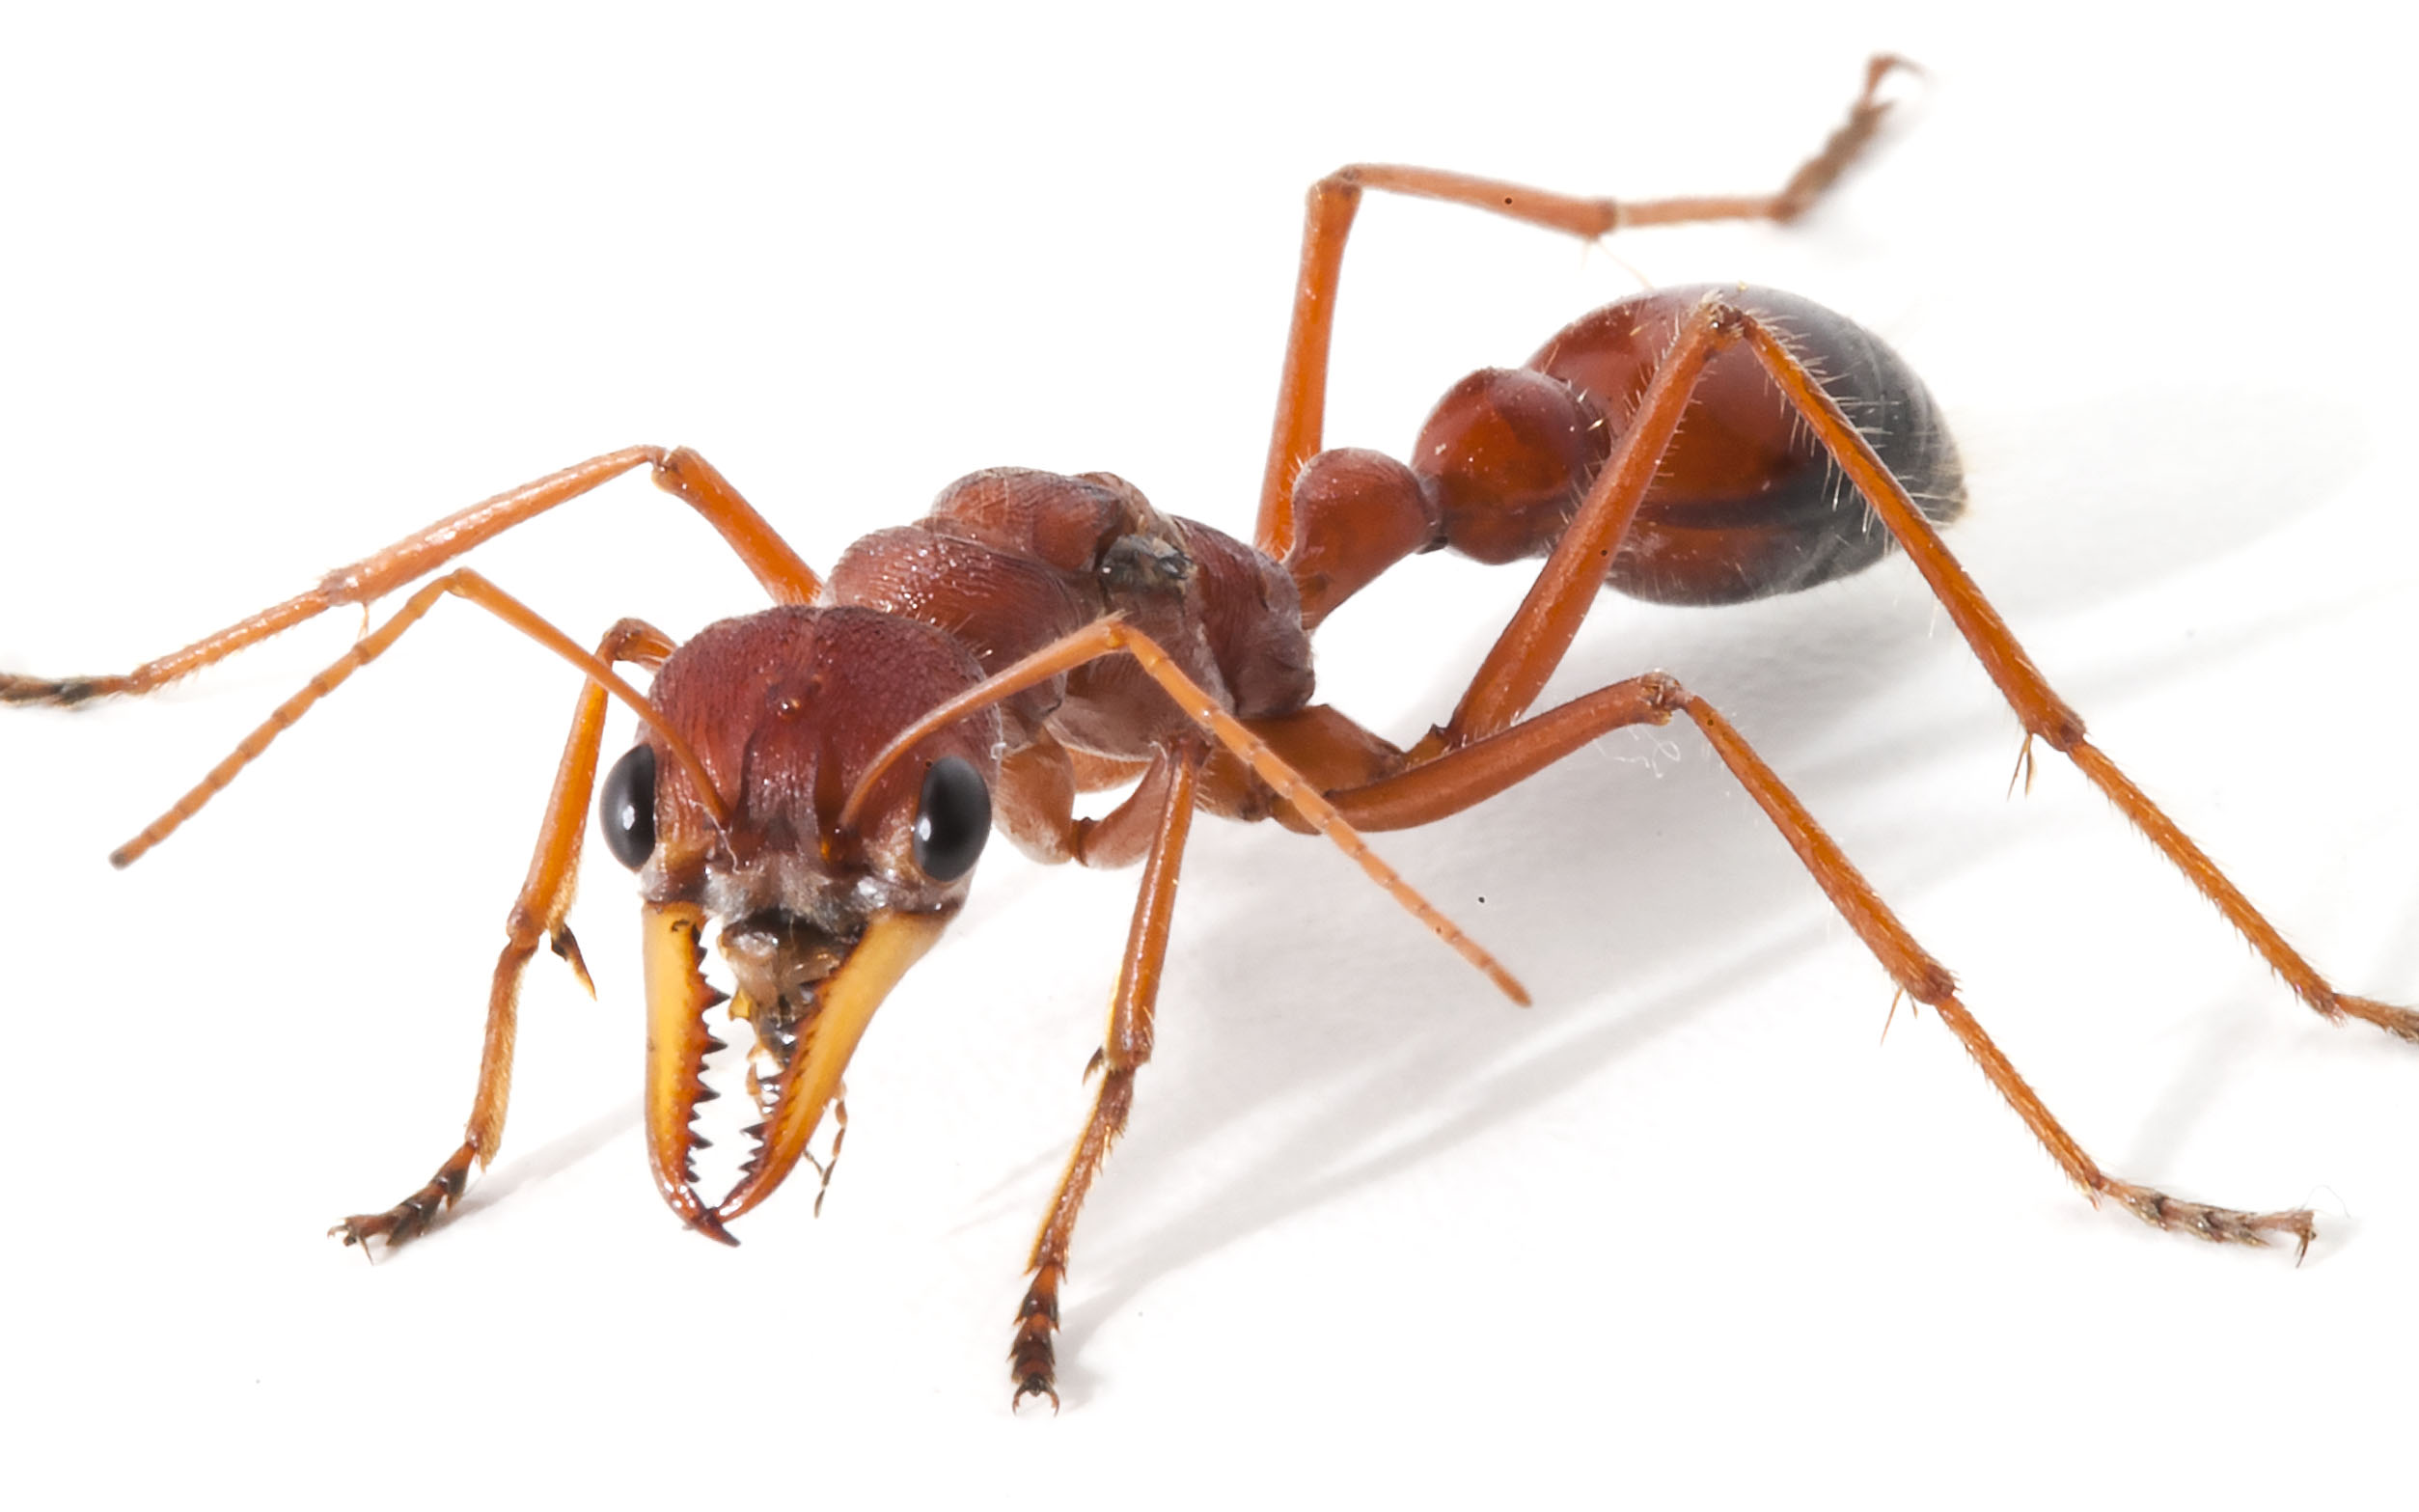 Giant red bull ant - Myrmecia gulosa. Credit: Dr Samuel Robinson & Dr Eivind Undheim, The University of Queensland.